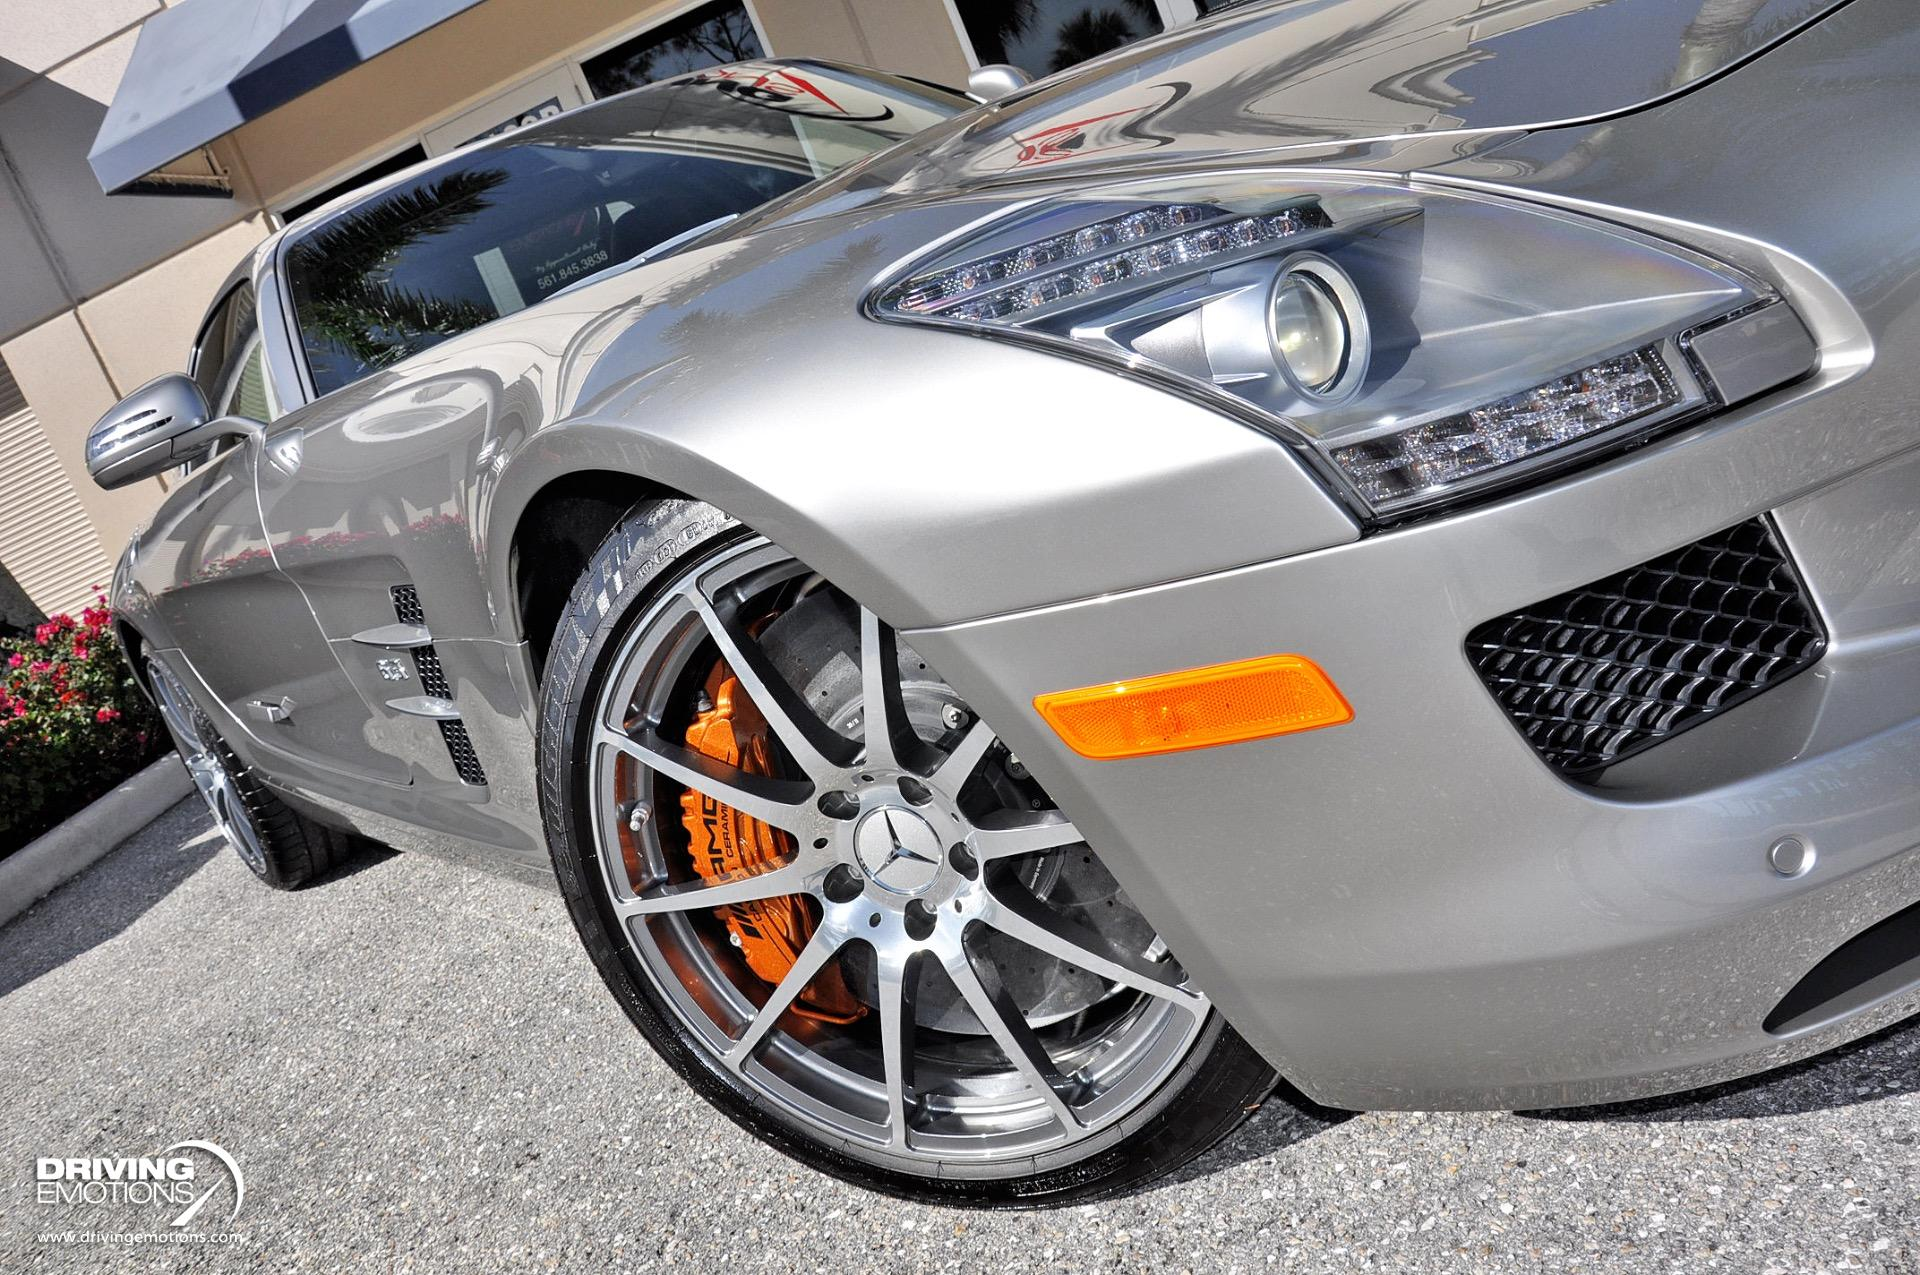 Used 2012 Mercedes-Benz SLS AMG Gullwing Coupe $236k MSRP!! ALUBEAM Silver!! | Lake Park, FL